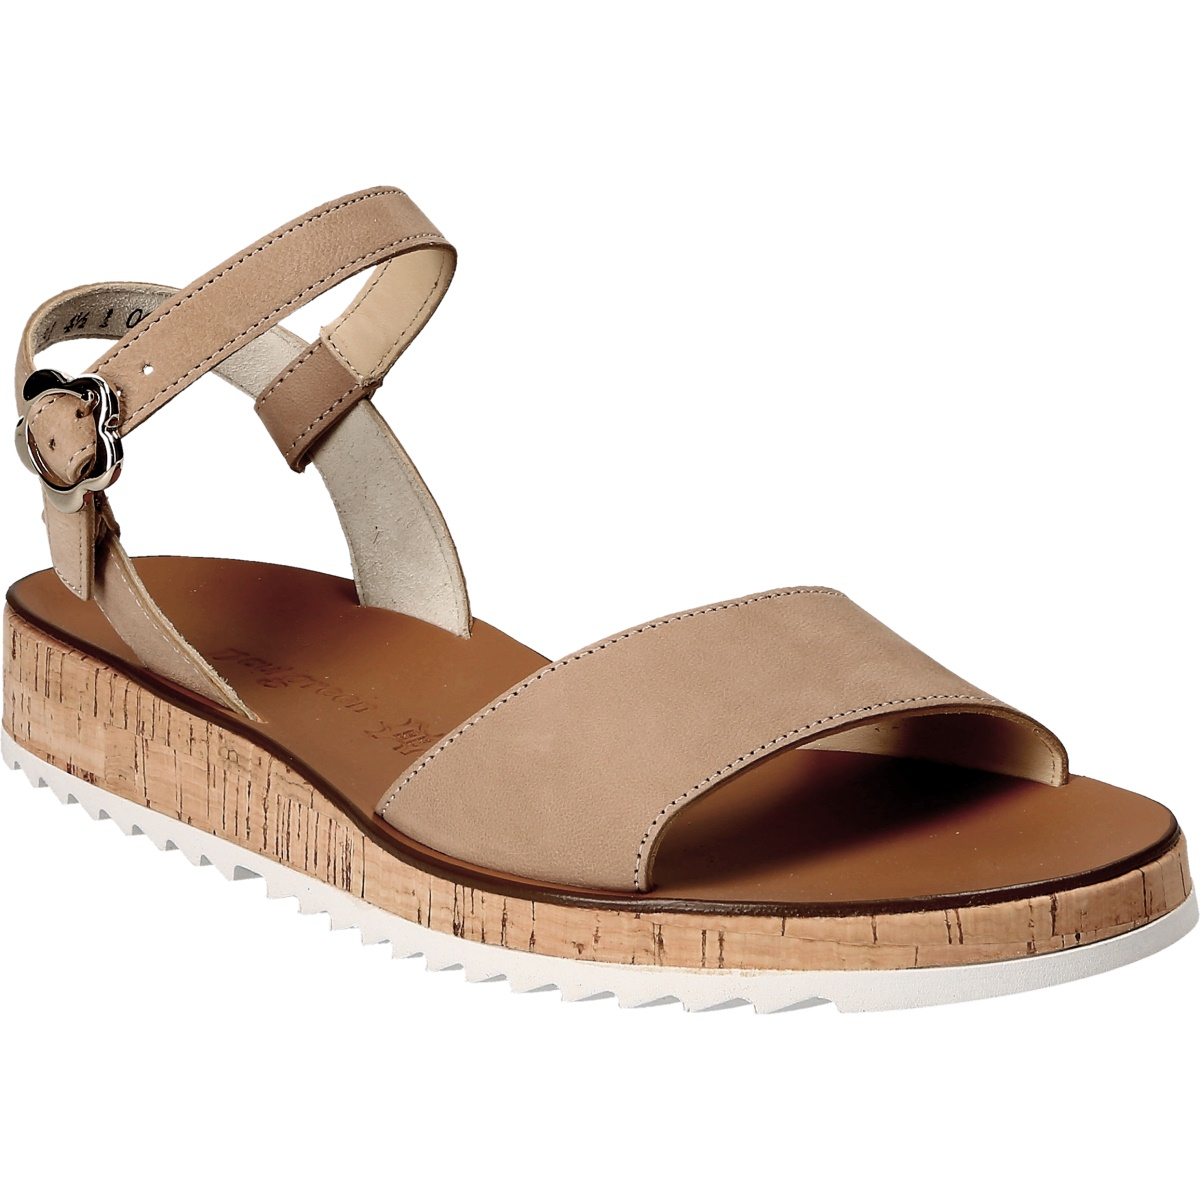 Paul Green 7161 002 Women S Shoes Sandals Buy Shoes At Our